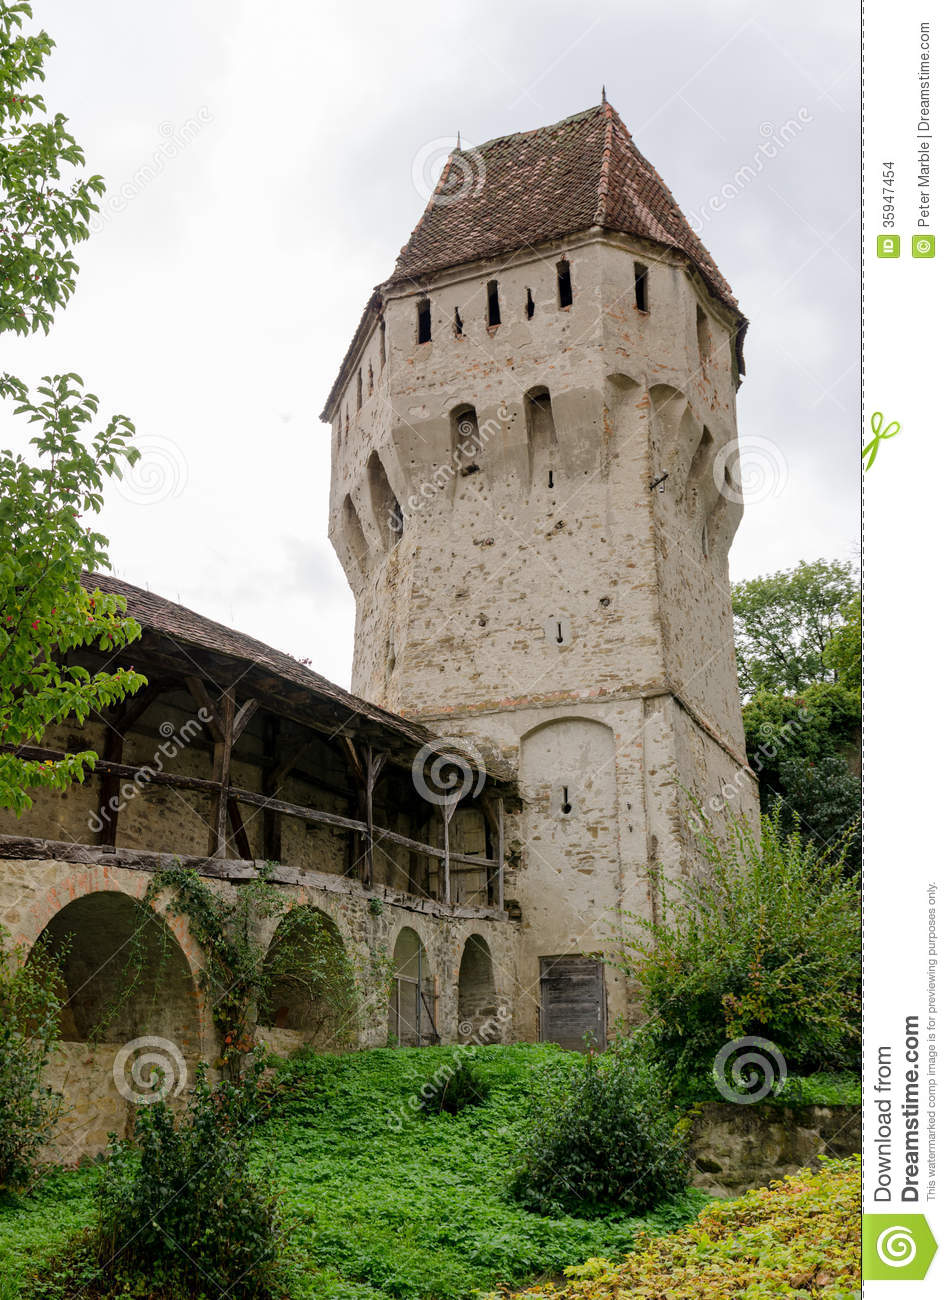 Tinsmiths Tower And Musketeers Passage In Sighisoara